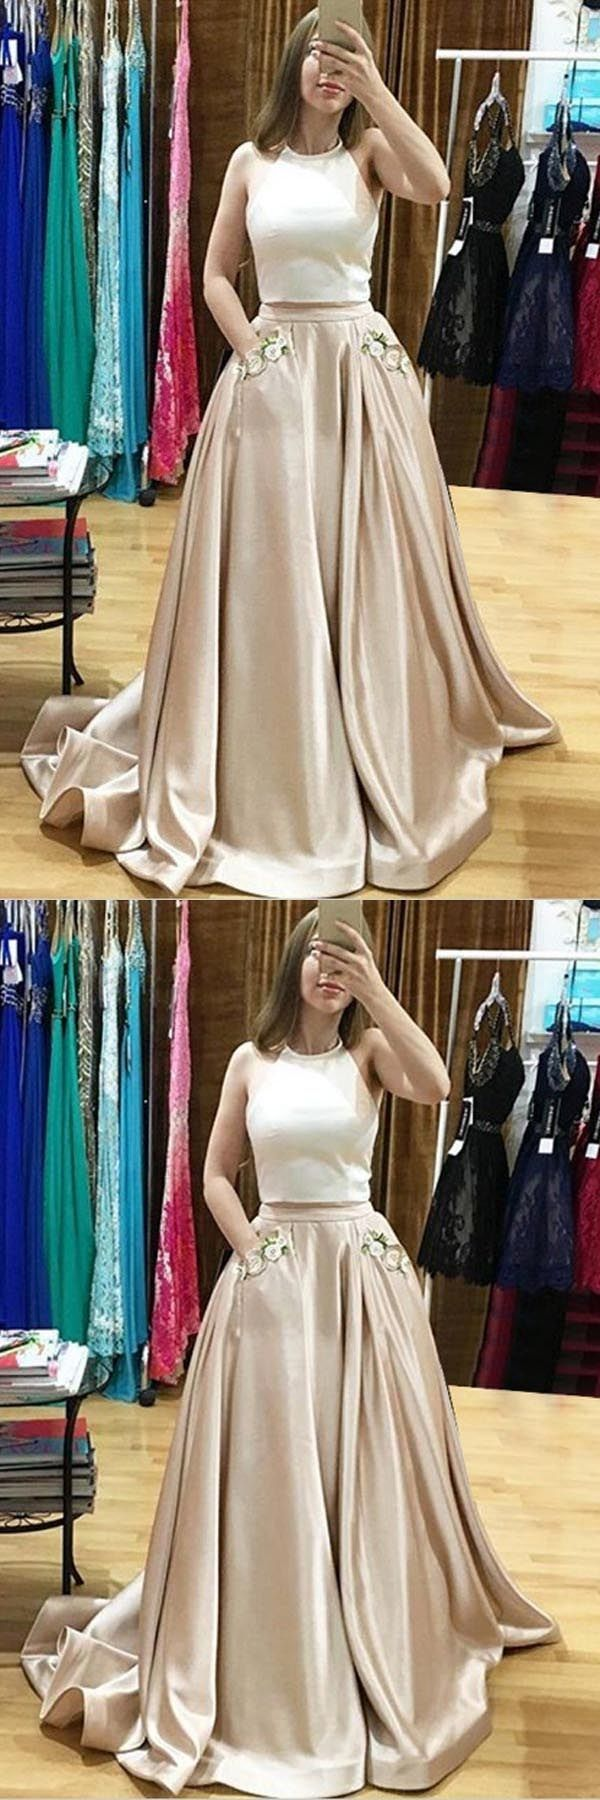 Customized easy prom dresses two piece halter sweep train prom dress